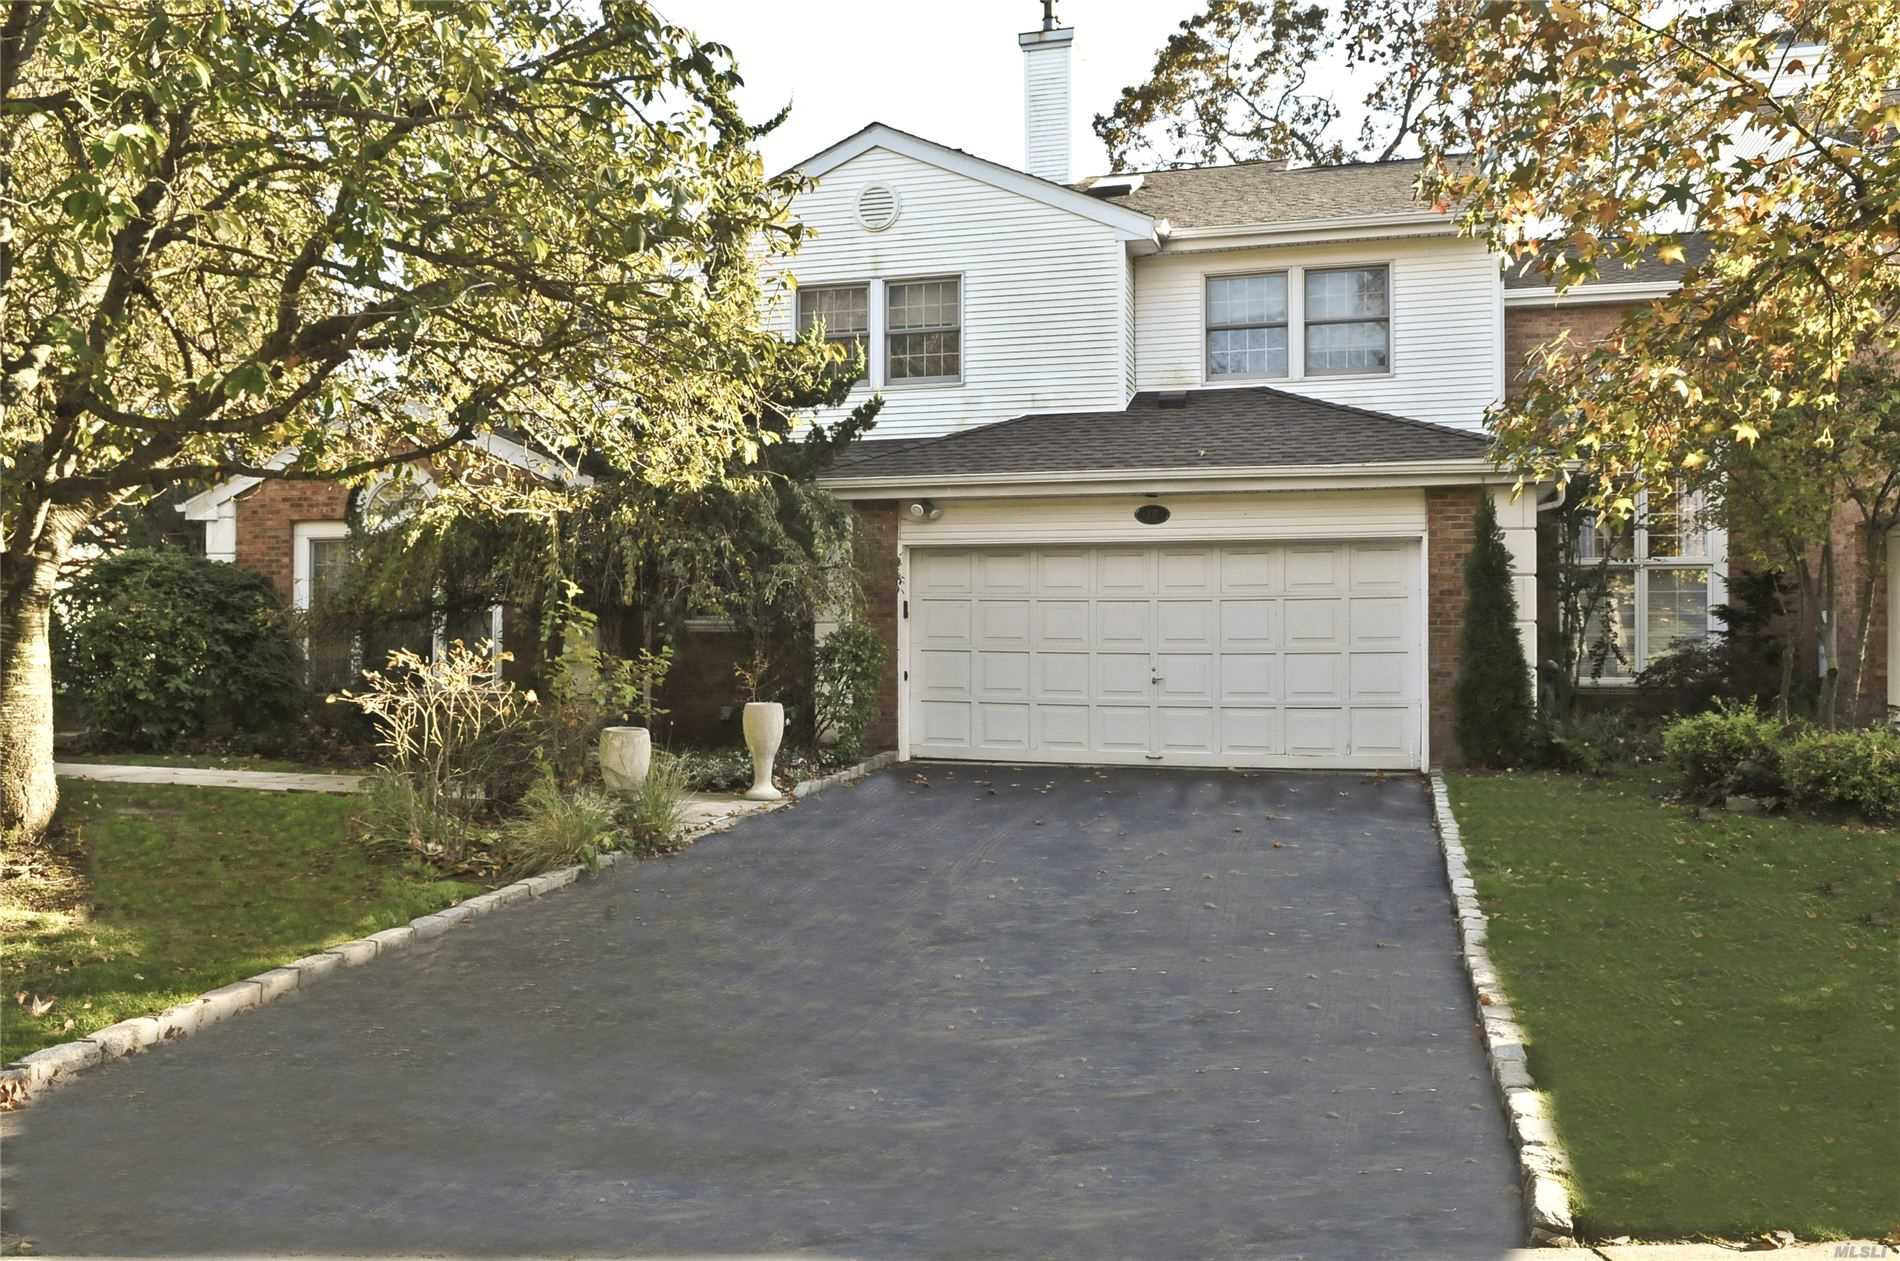 78 Hamlet Dr - Commack, New York